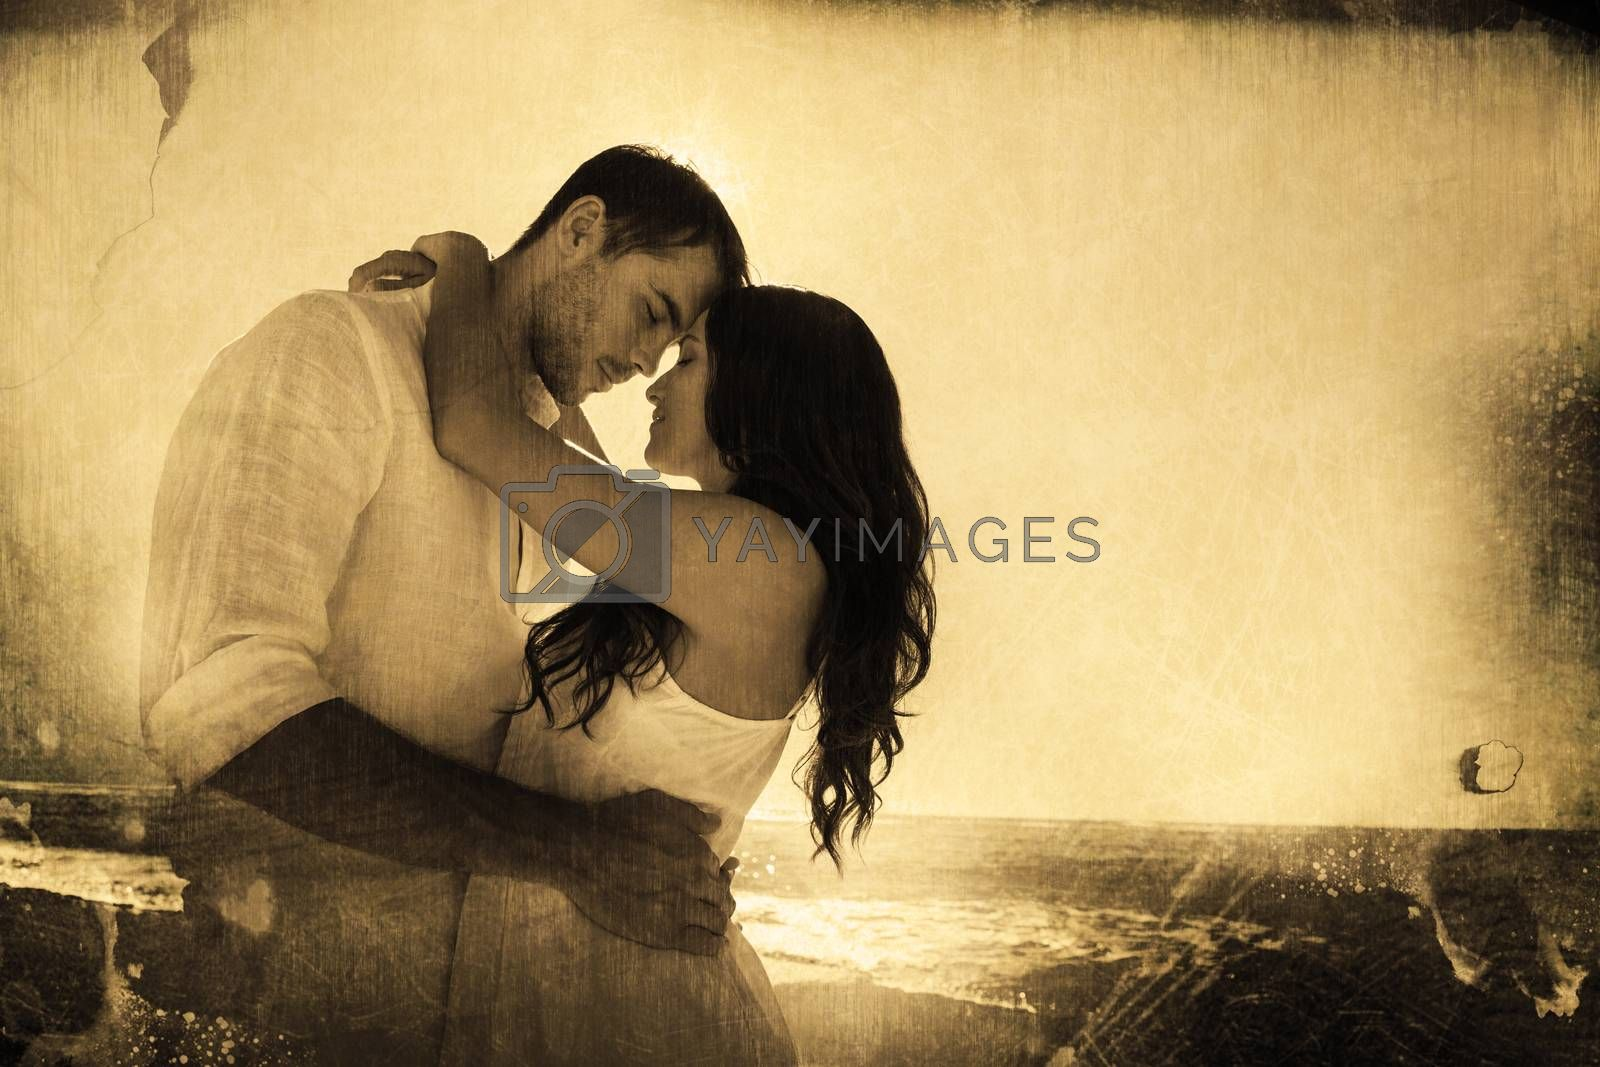 Romantic couple embracing  against grey background